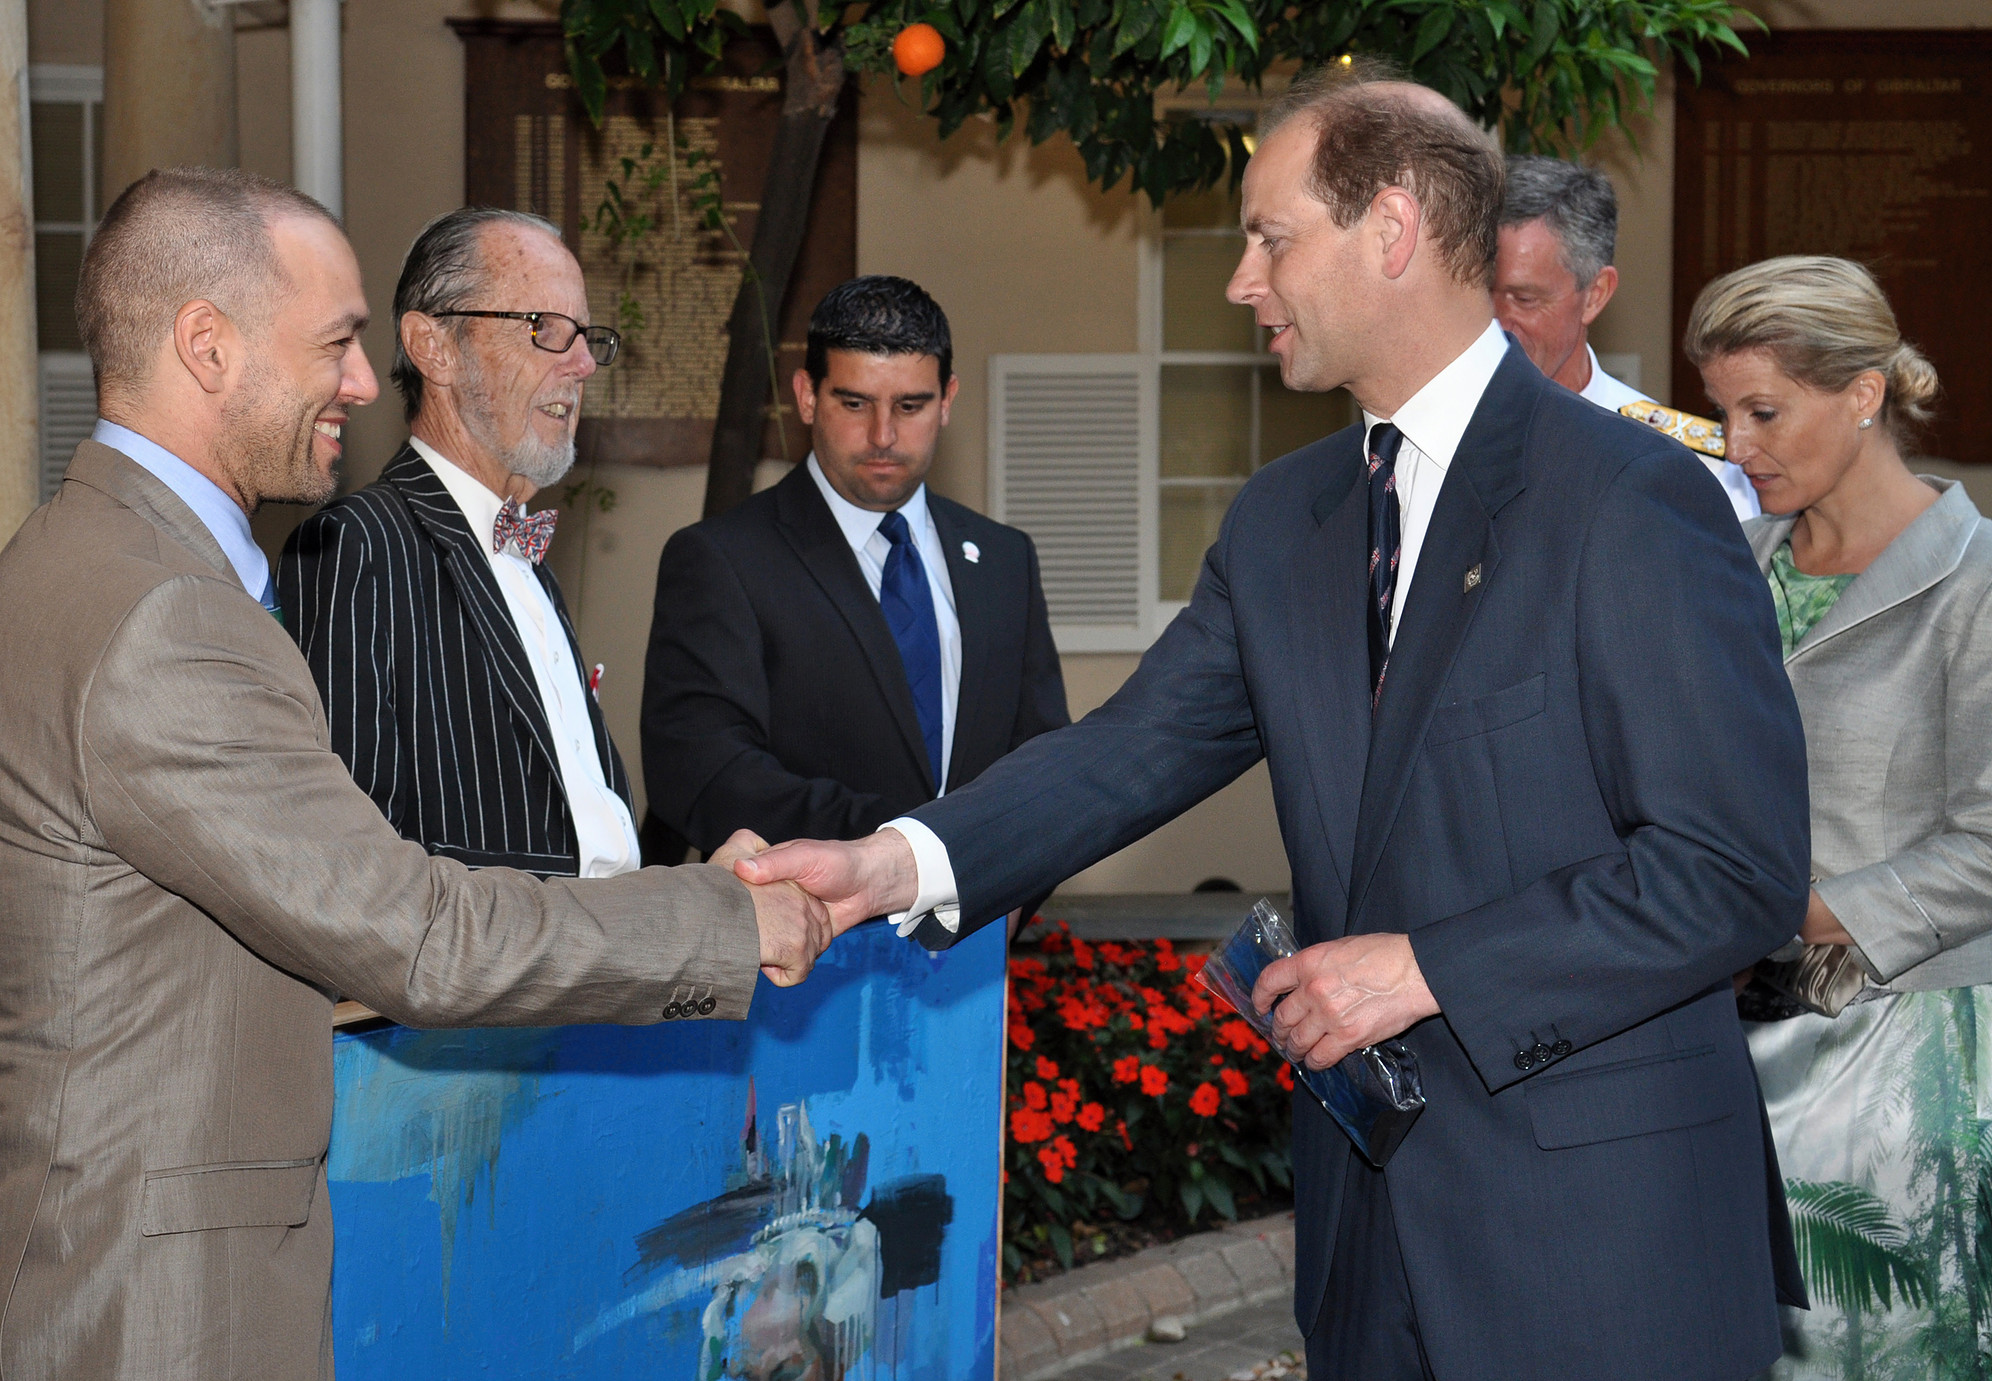 Prince Edward Earl of Wessex collecting portrait of HRH.